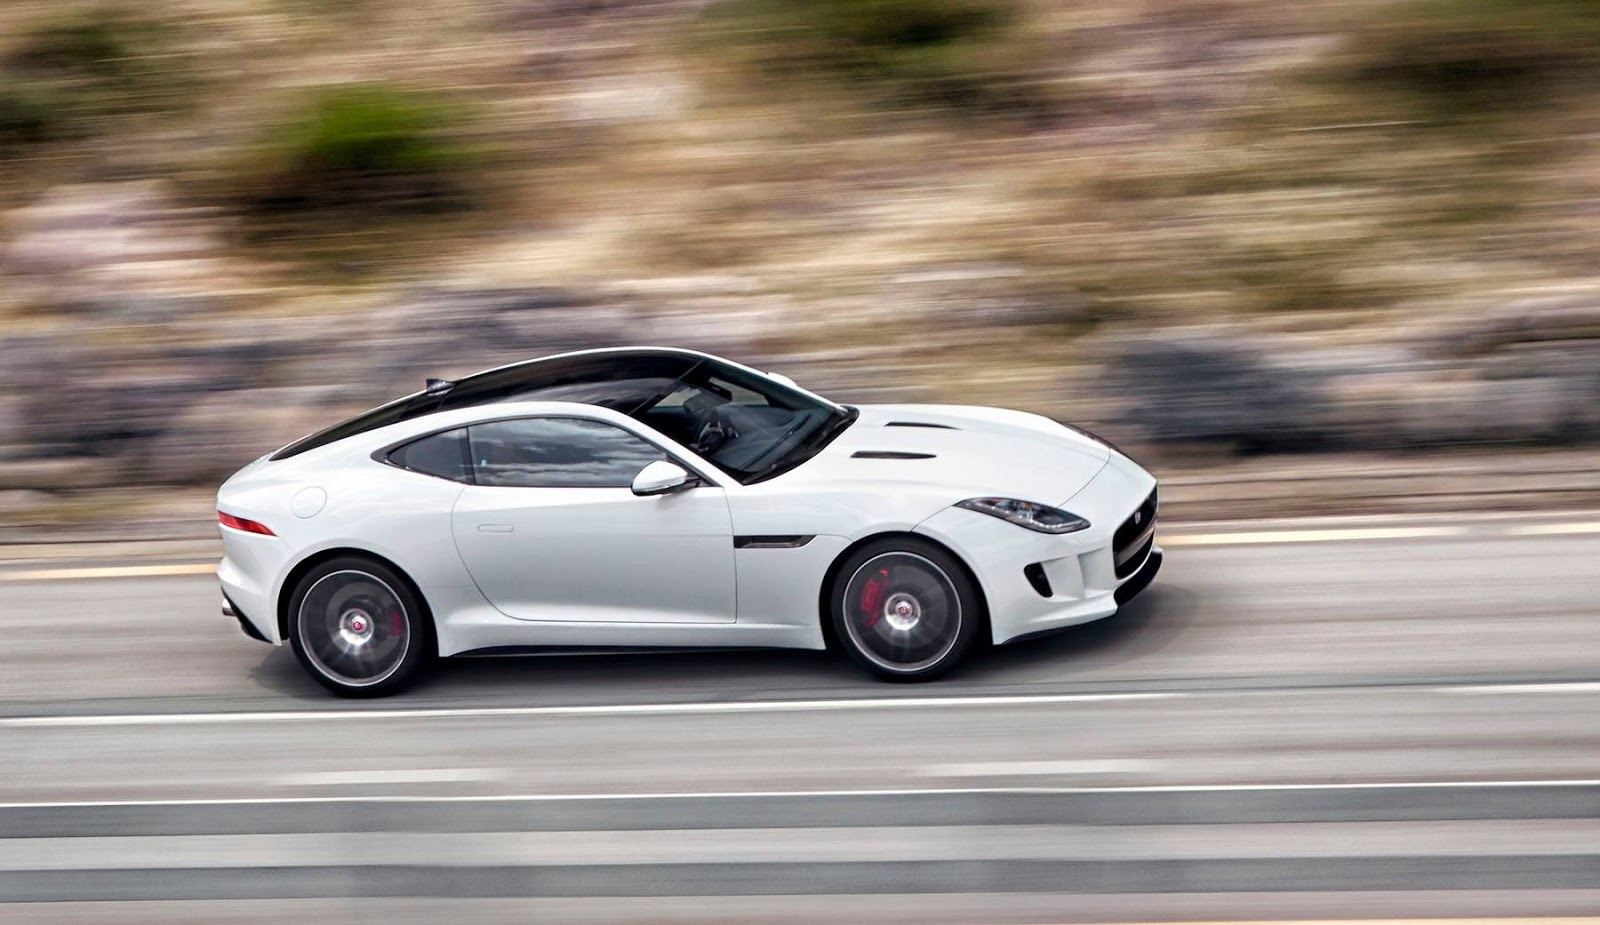 Jaguar Cars News Jaguar Cars News Jaguar F Type Coupe First Photos